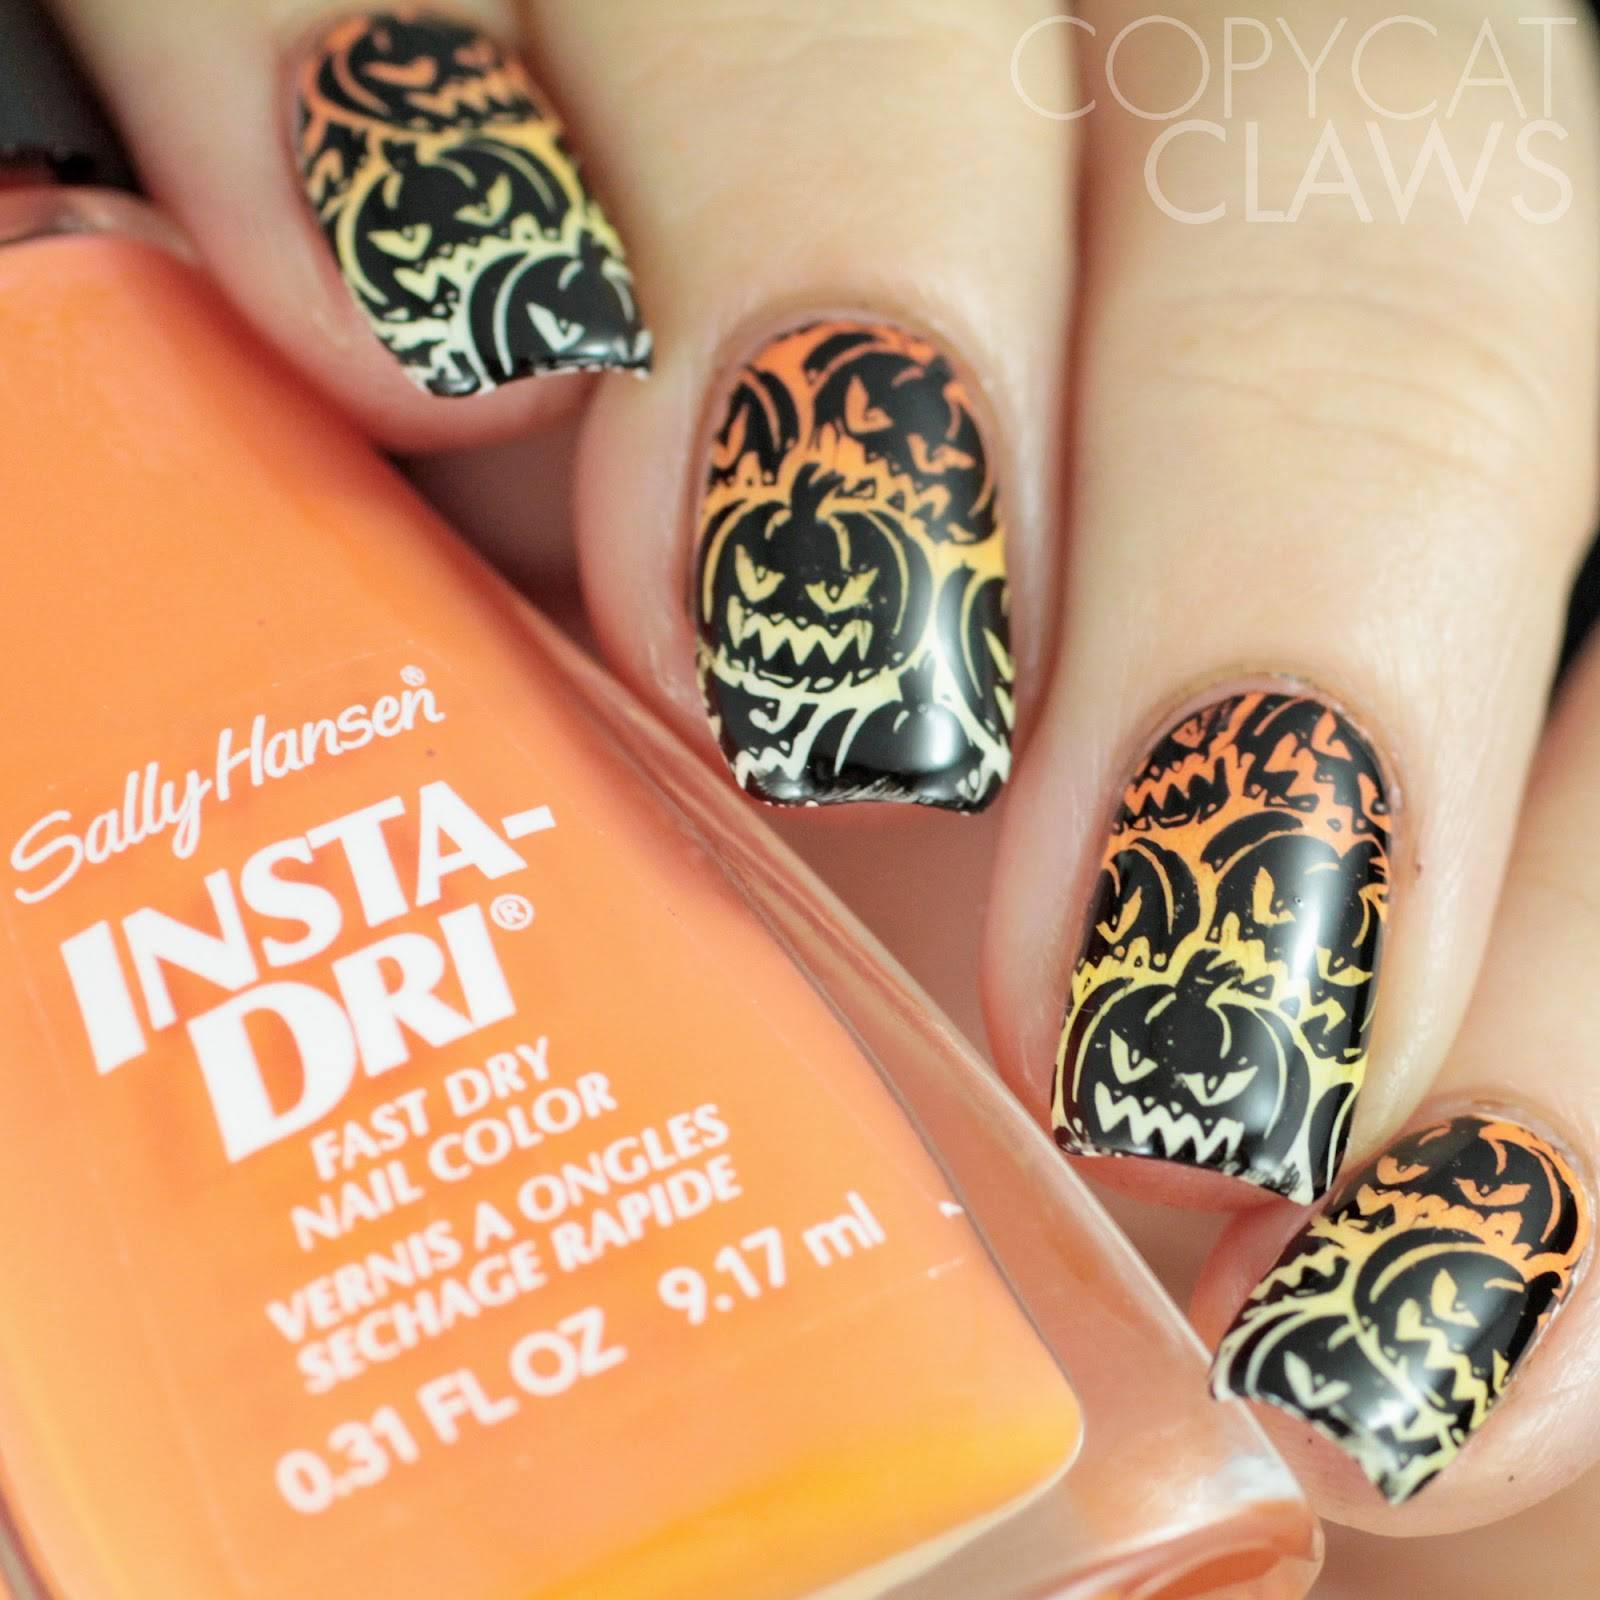 Copycat Claws: Whats Up Nails A012 and B023 Halloween Stamping Plates